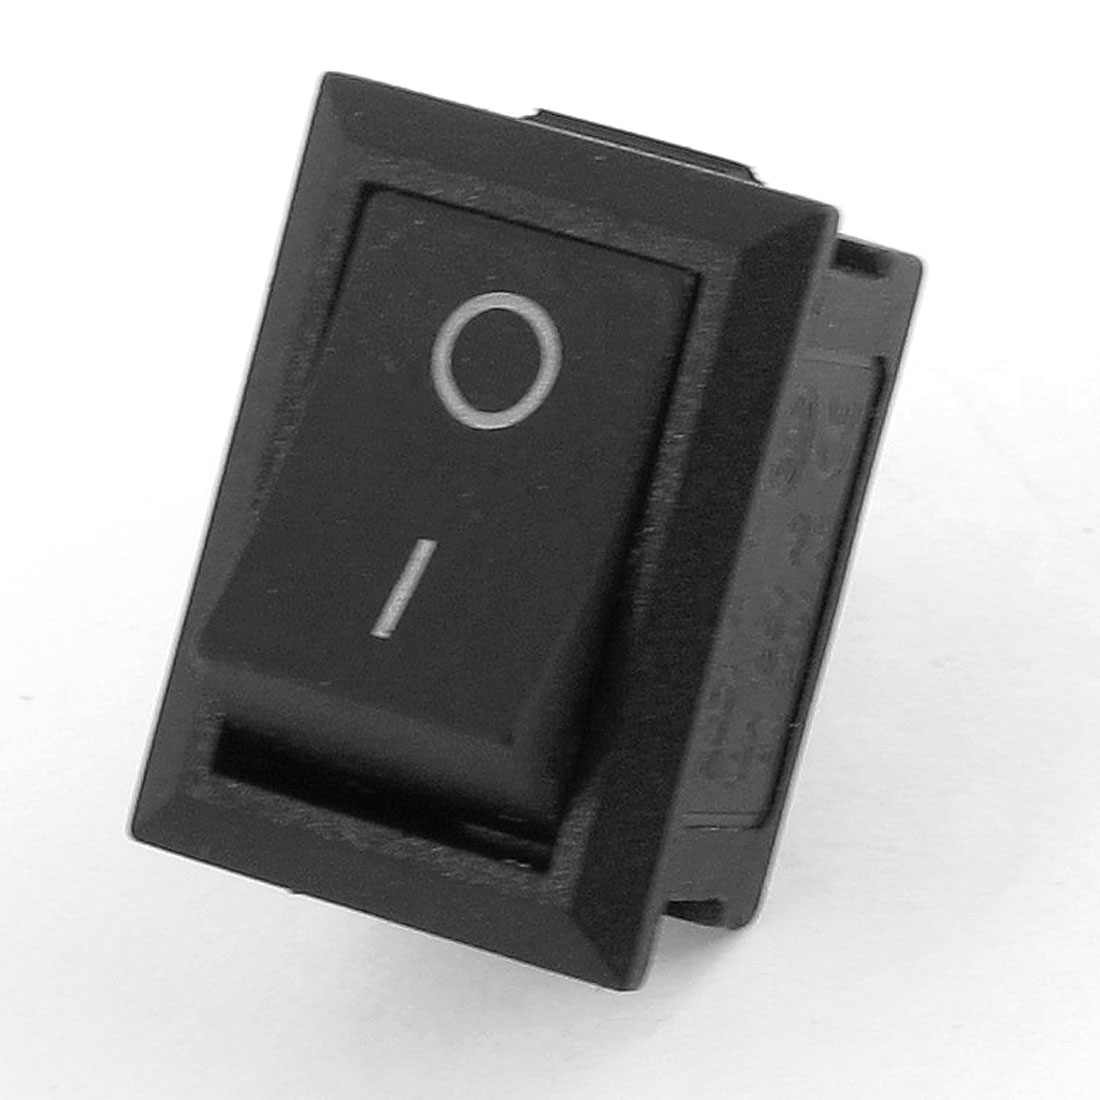 Black ON-OFF SPST Snap in Boat Rocker Switch 6A/250V 10A/125V AC